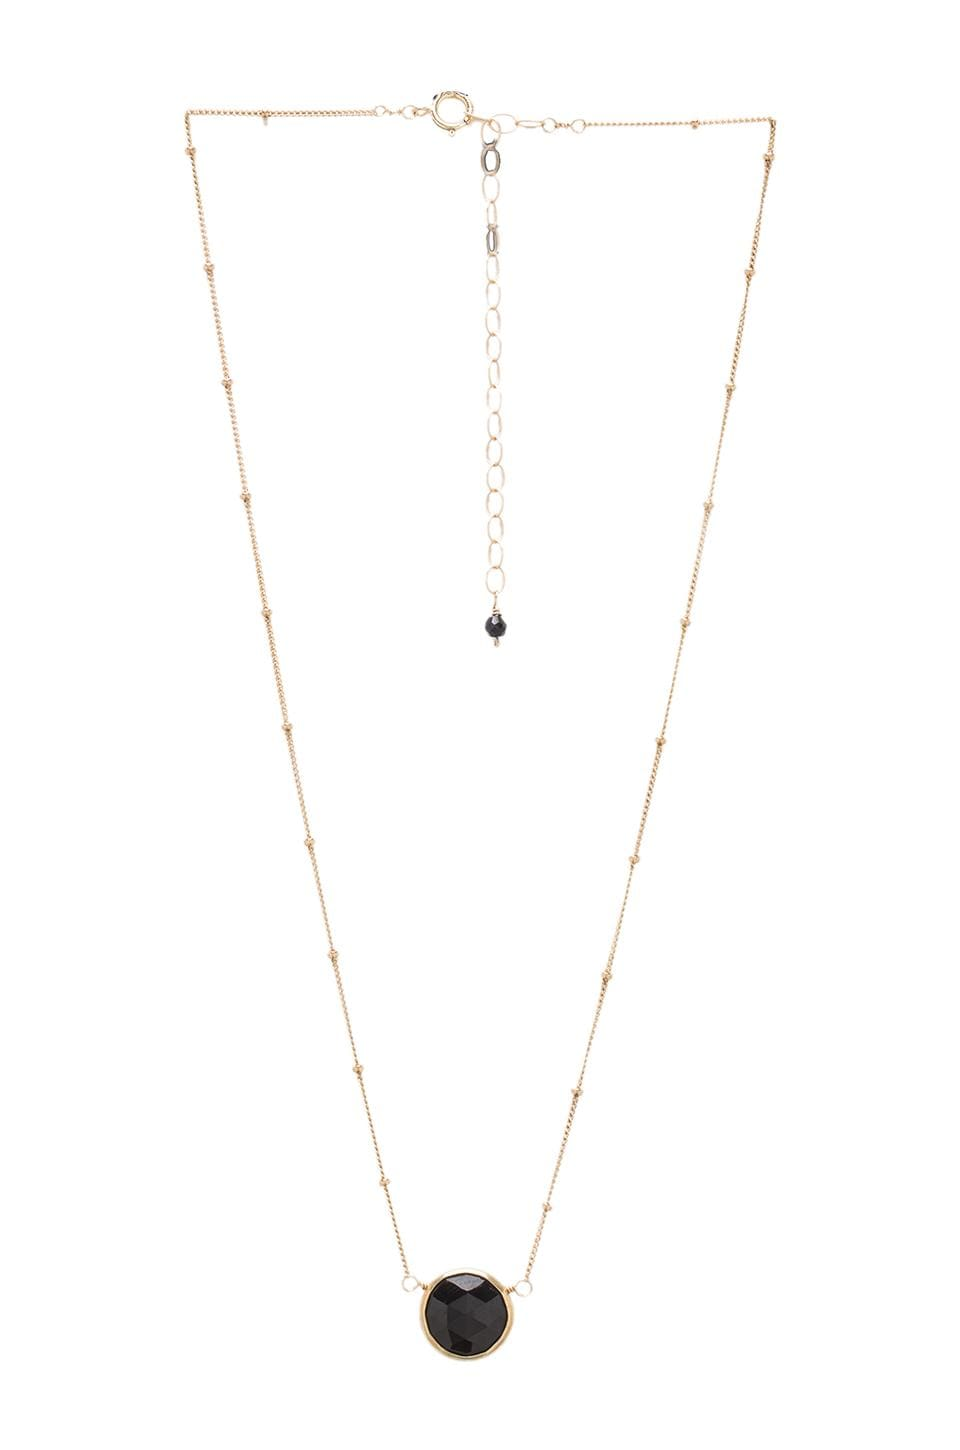 Natalie B Jewelry Natalie B Stone Drop Necklace in Onyx